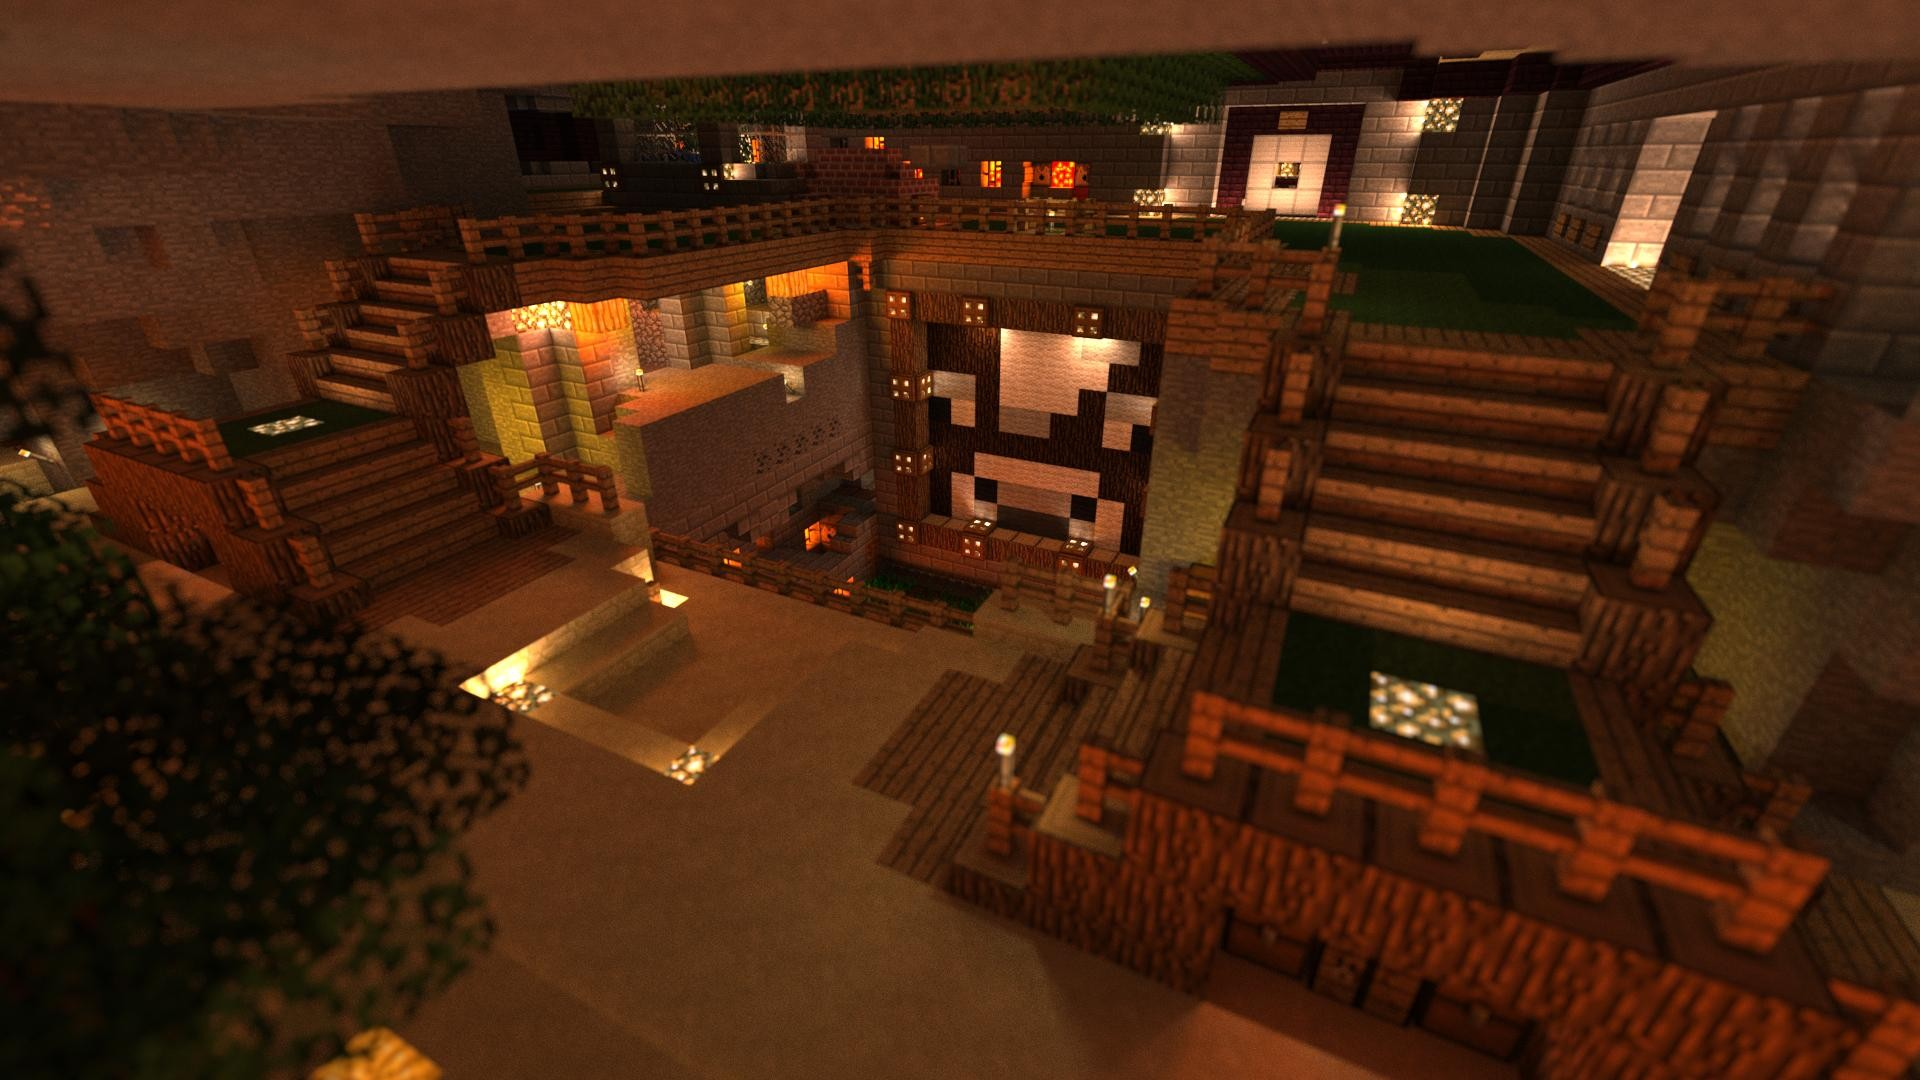 minecraft lab map with Fond Ecran Minecraft Manoir Vue Interieur on File Mount Massive Asylum Upclose further Hive Hub moreover Singularity Soviet Laboratory Widescreen Hd Wallpaper likewise Adventure as well 1081692.